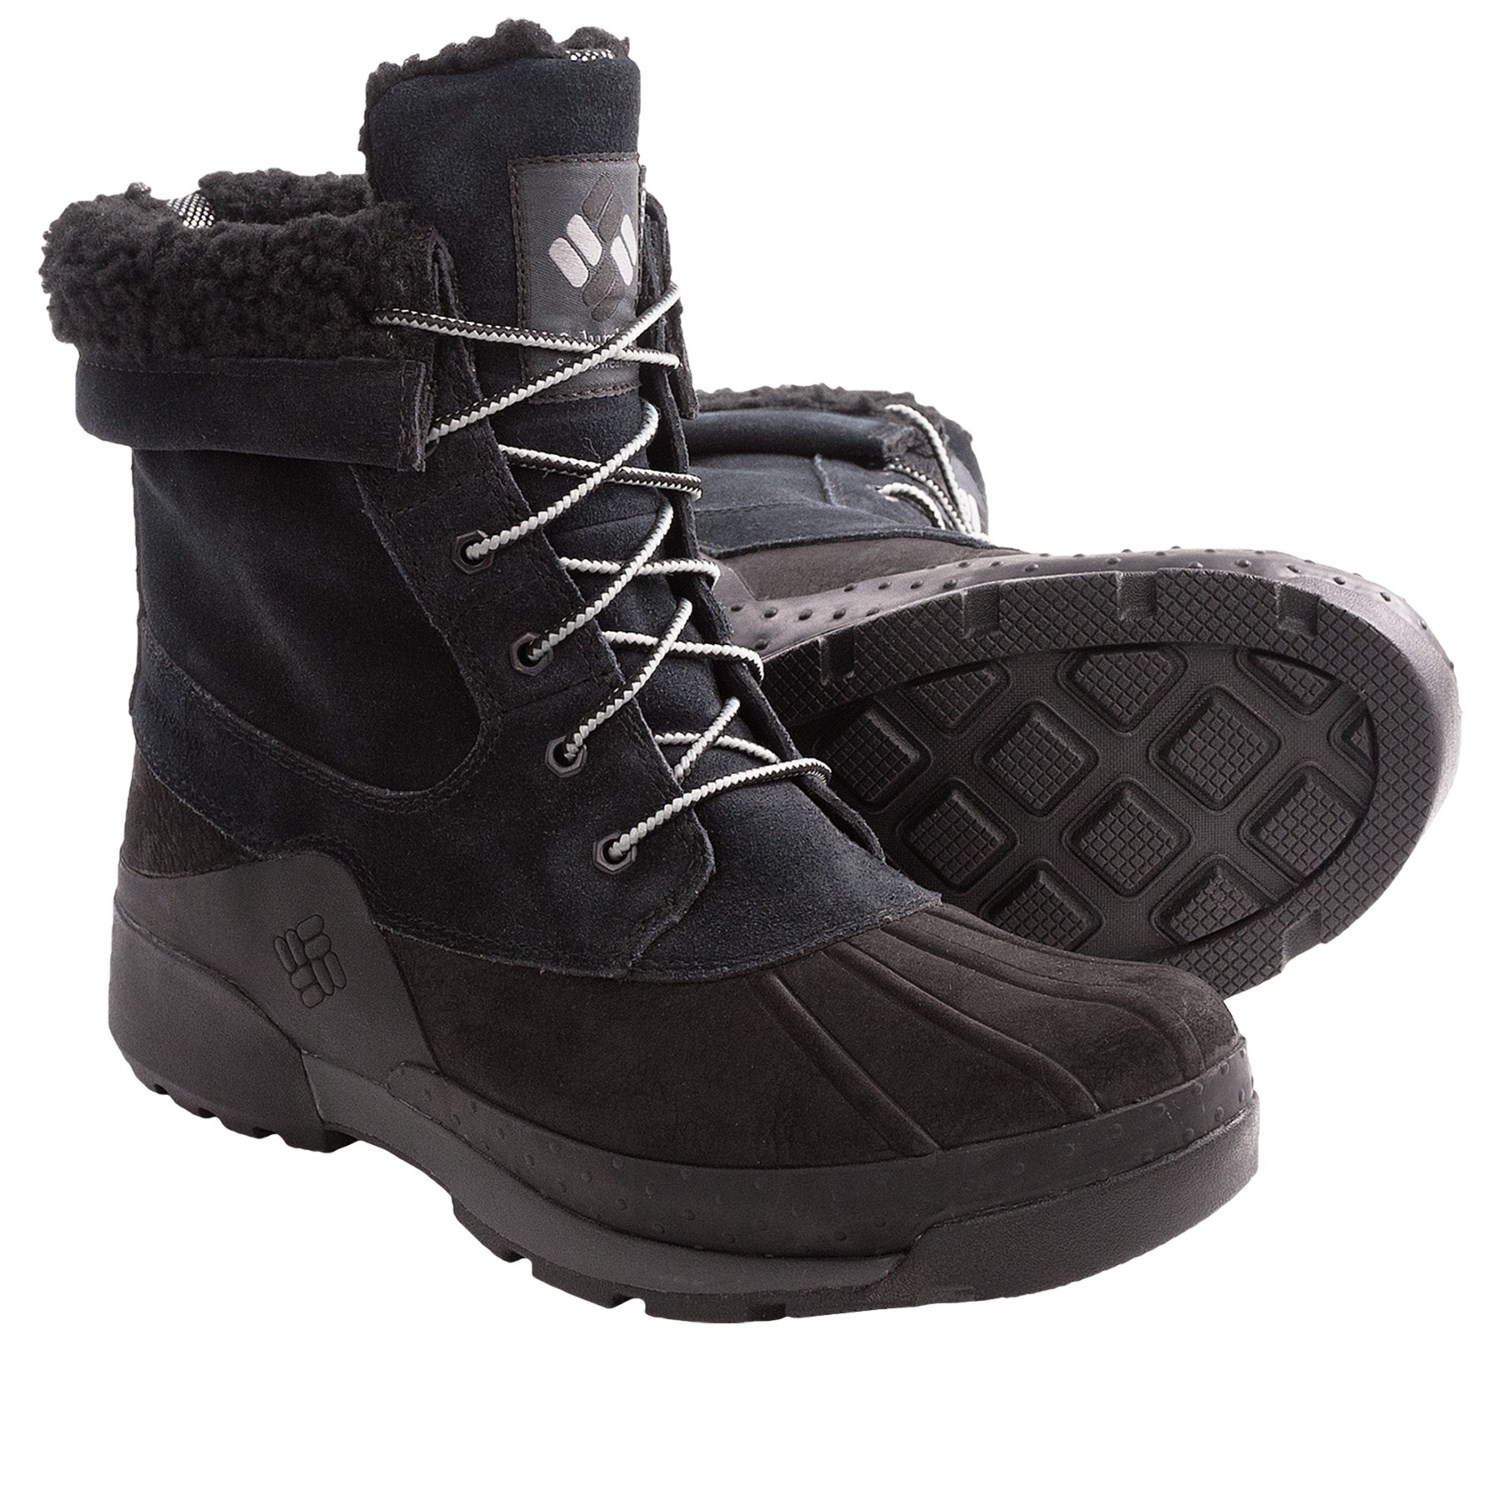 Winter Boots Mens Extra Wide | Santa Barbara Institute for ...